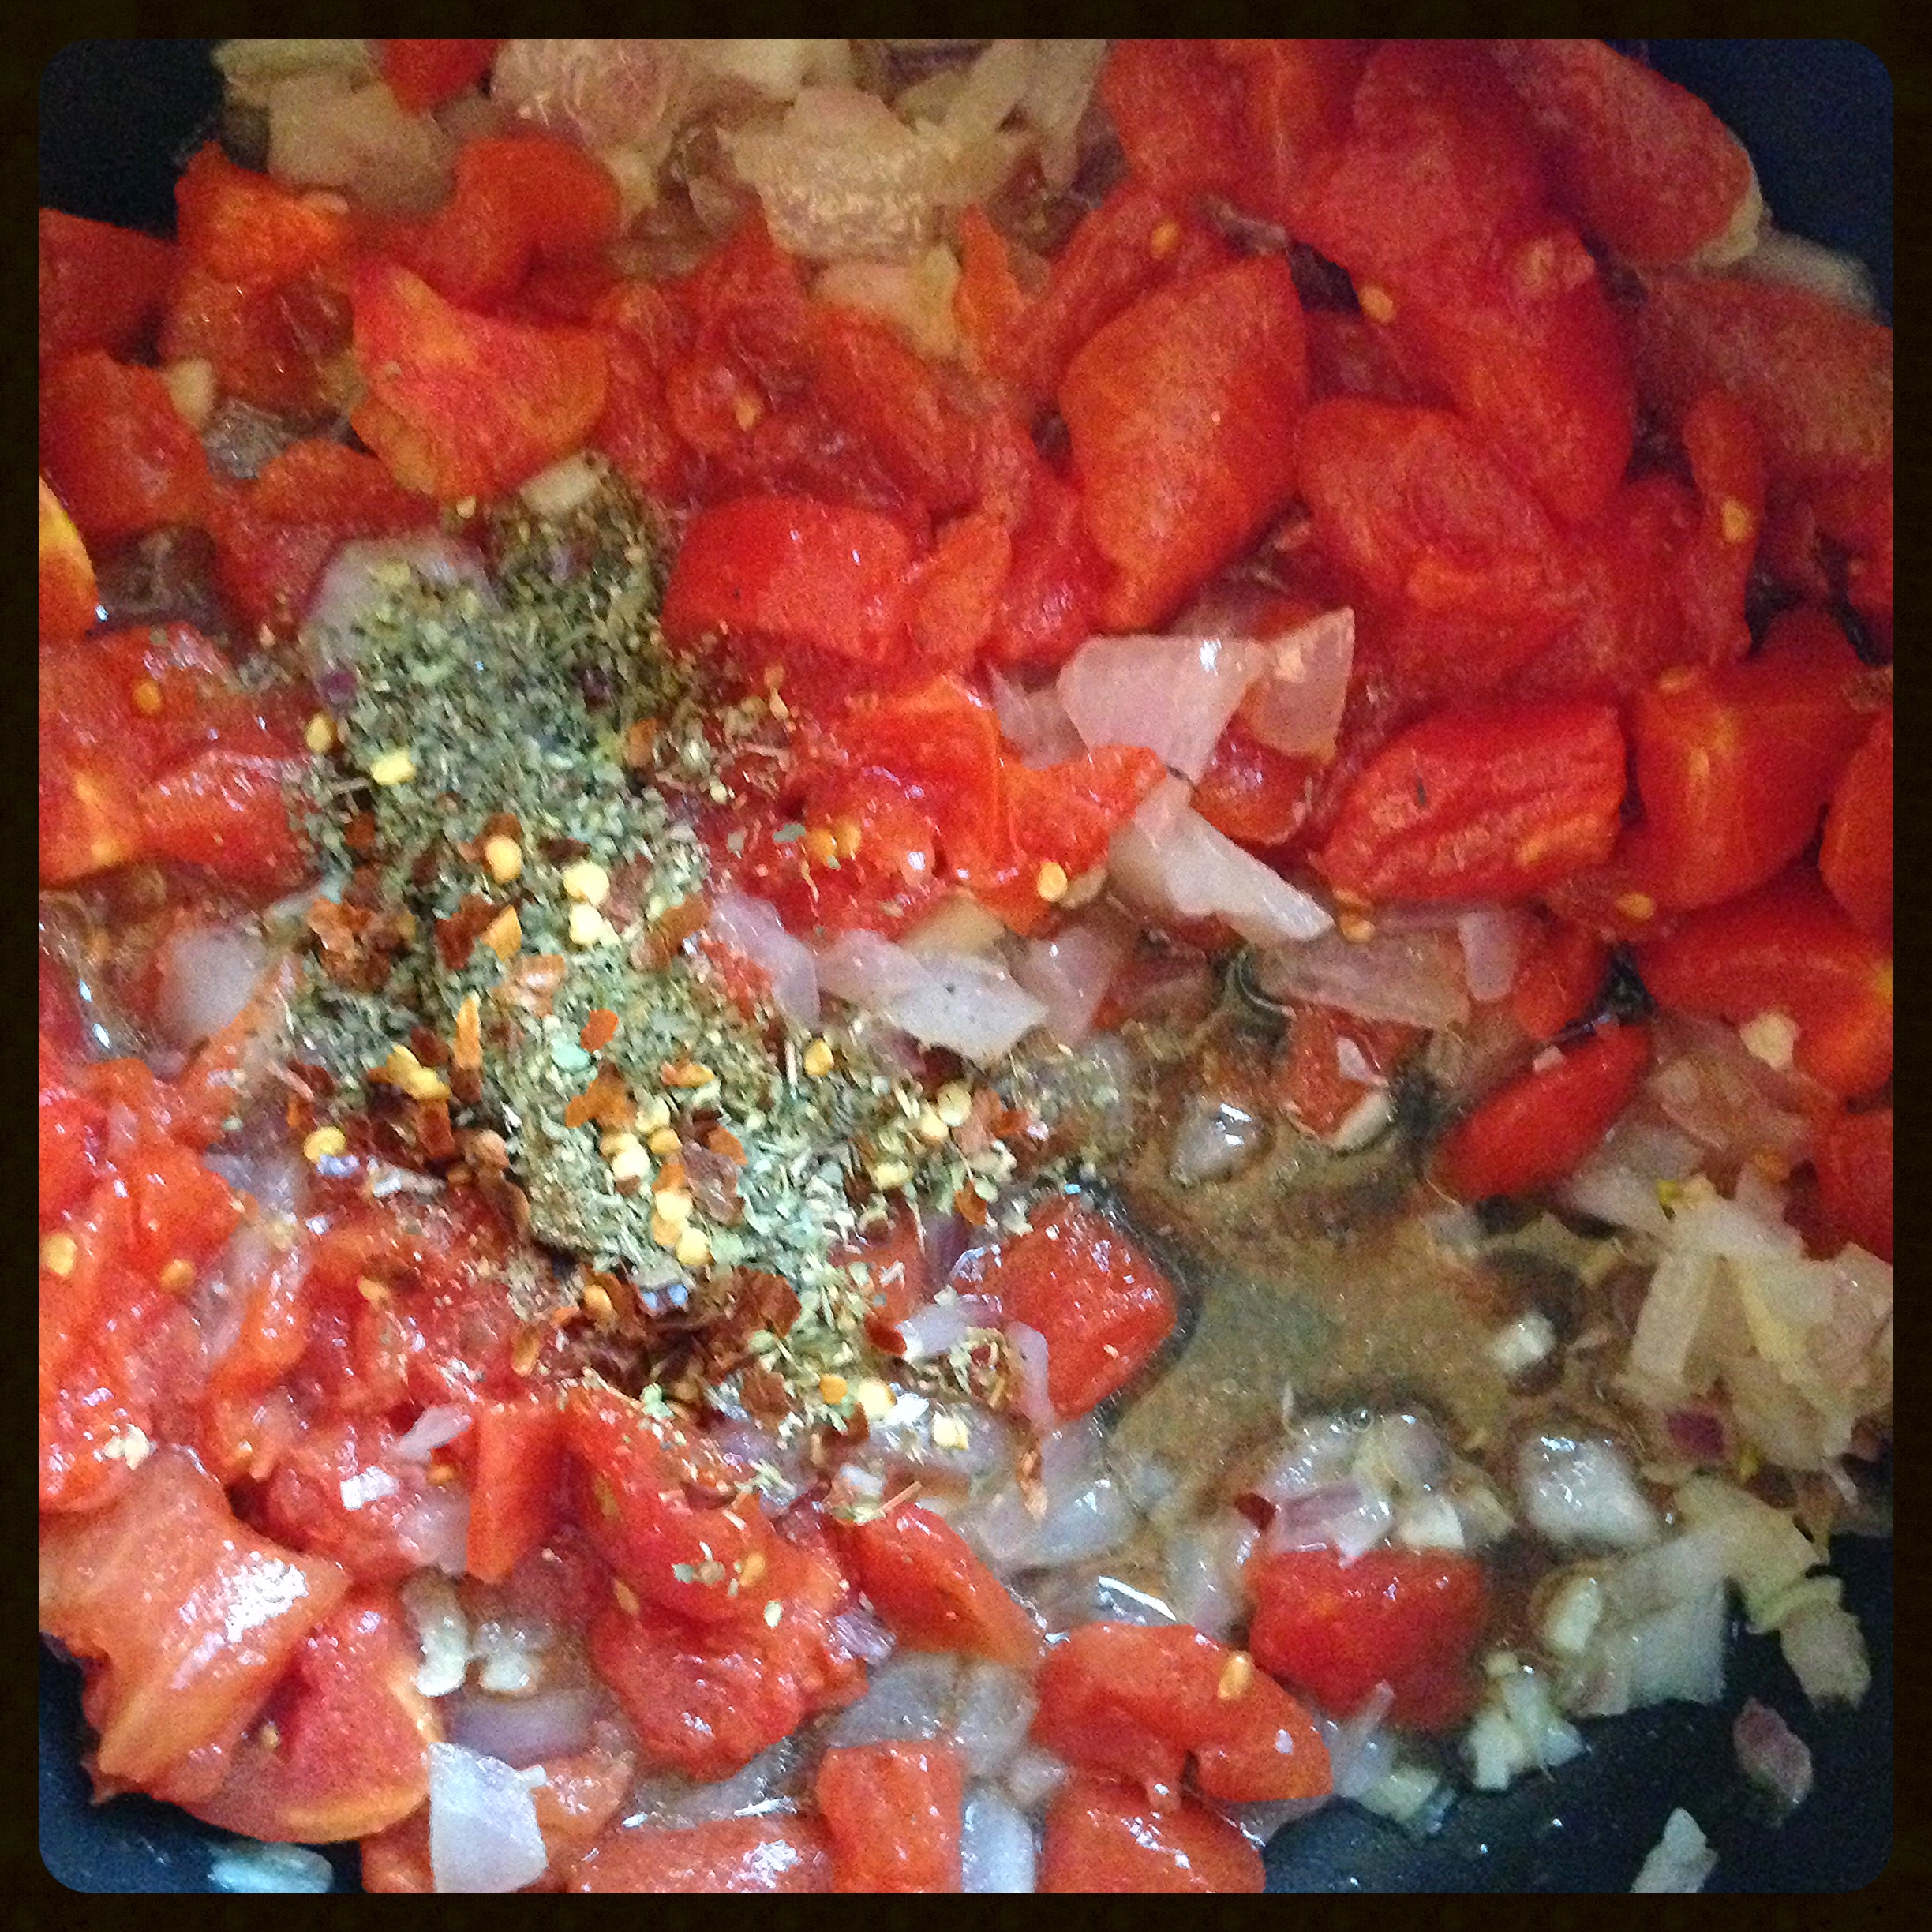 sauteed onion, garlic, tomatoes and spices